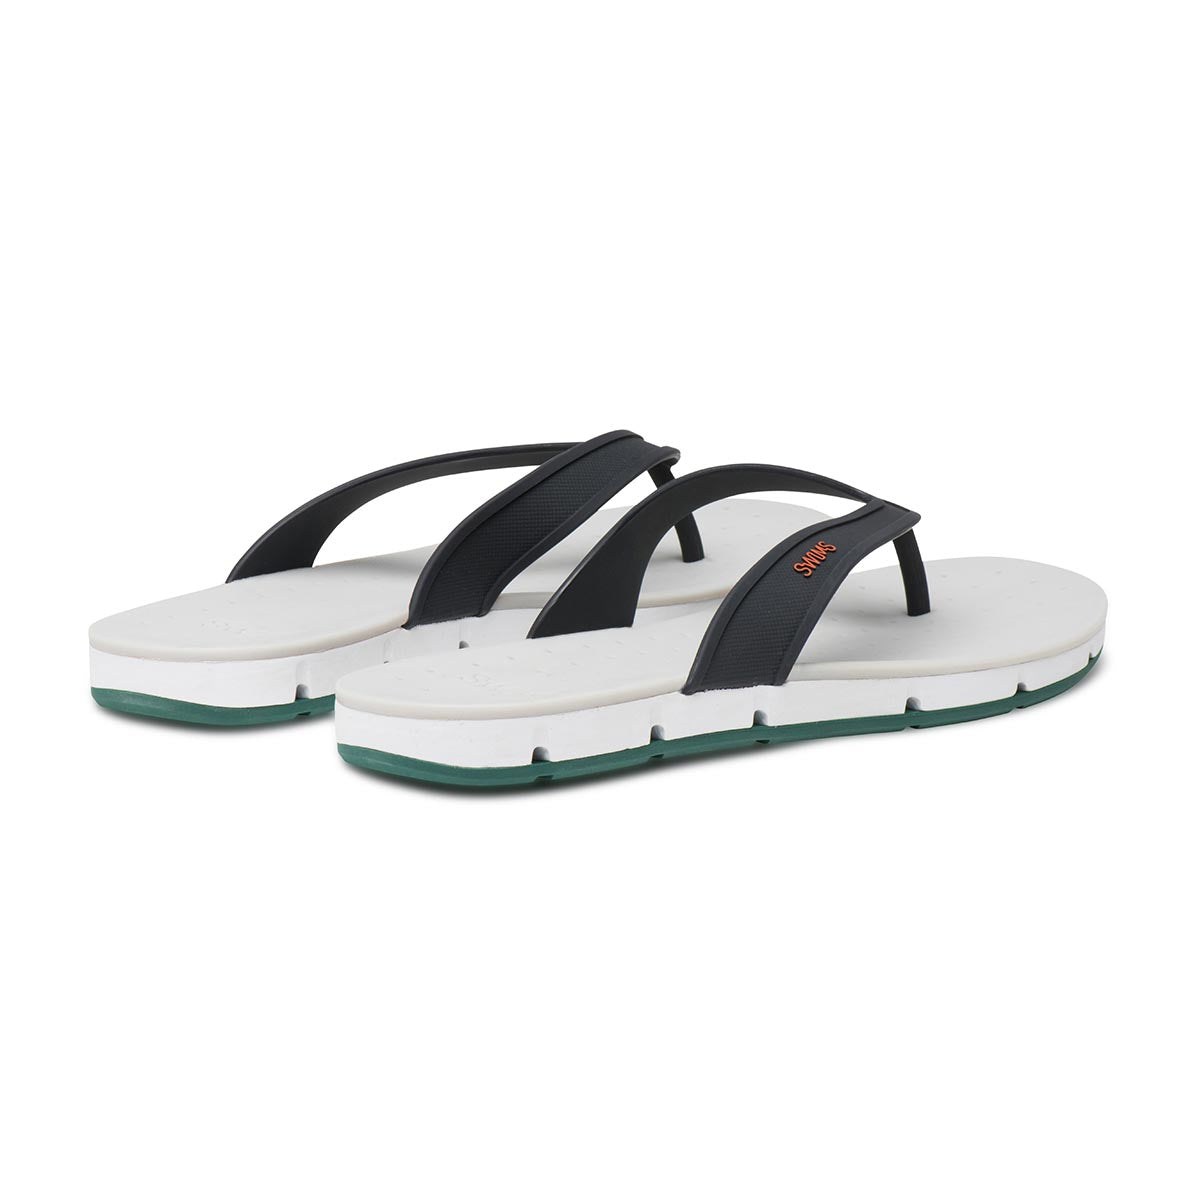 Breeze Thong Sandal - background::white,variant::NAVY/WHITE/COURTGREEN